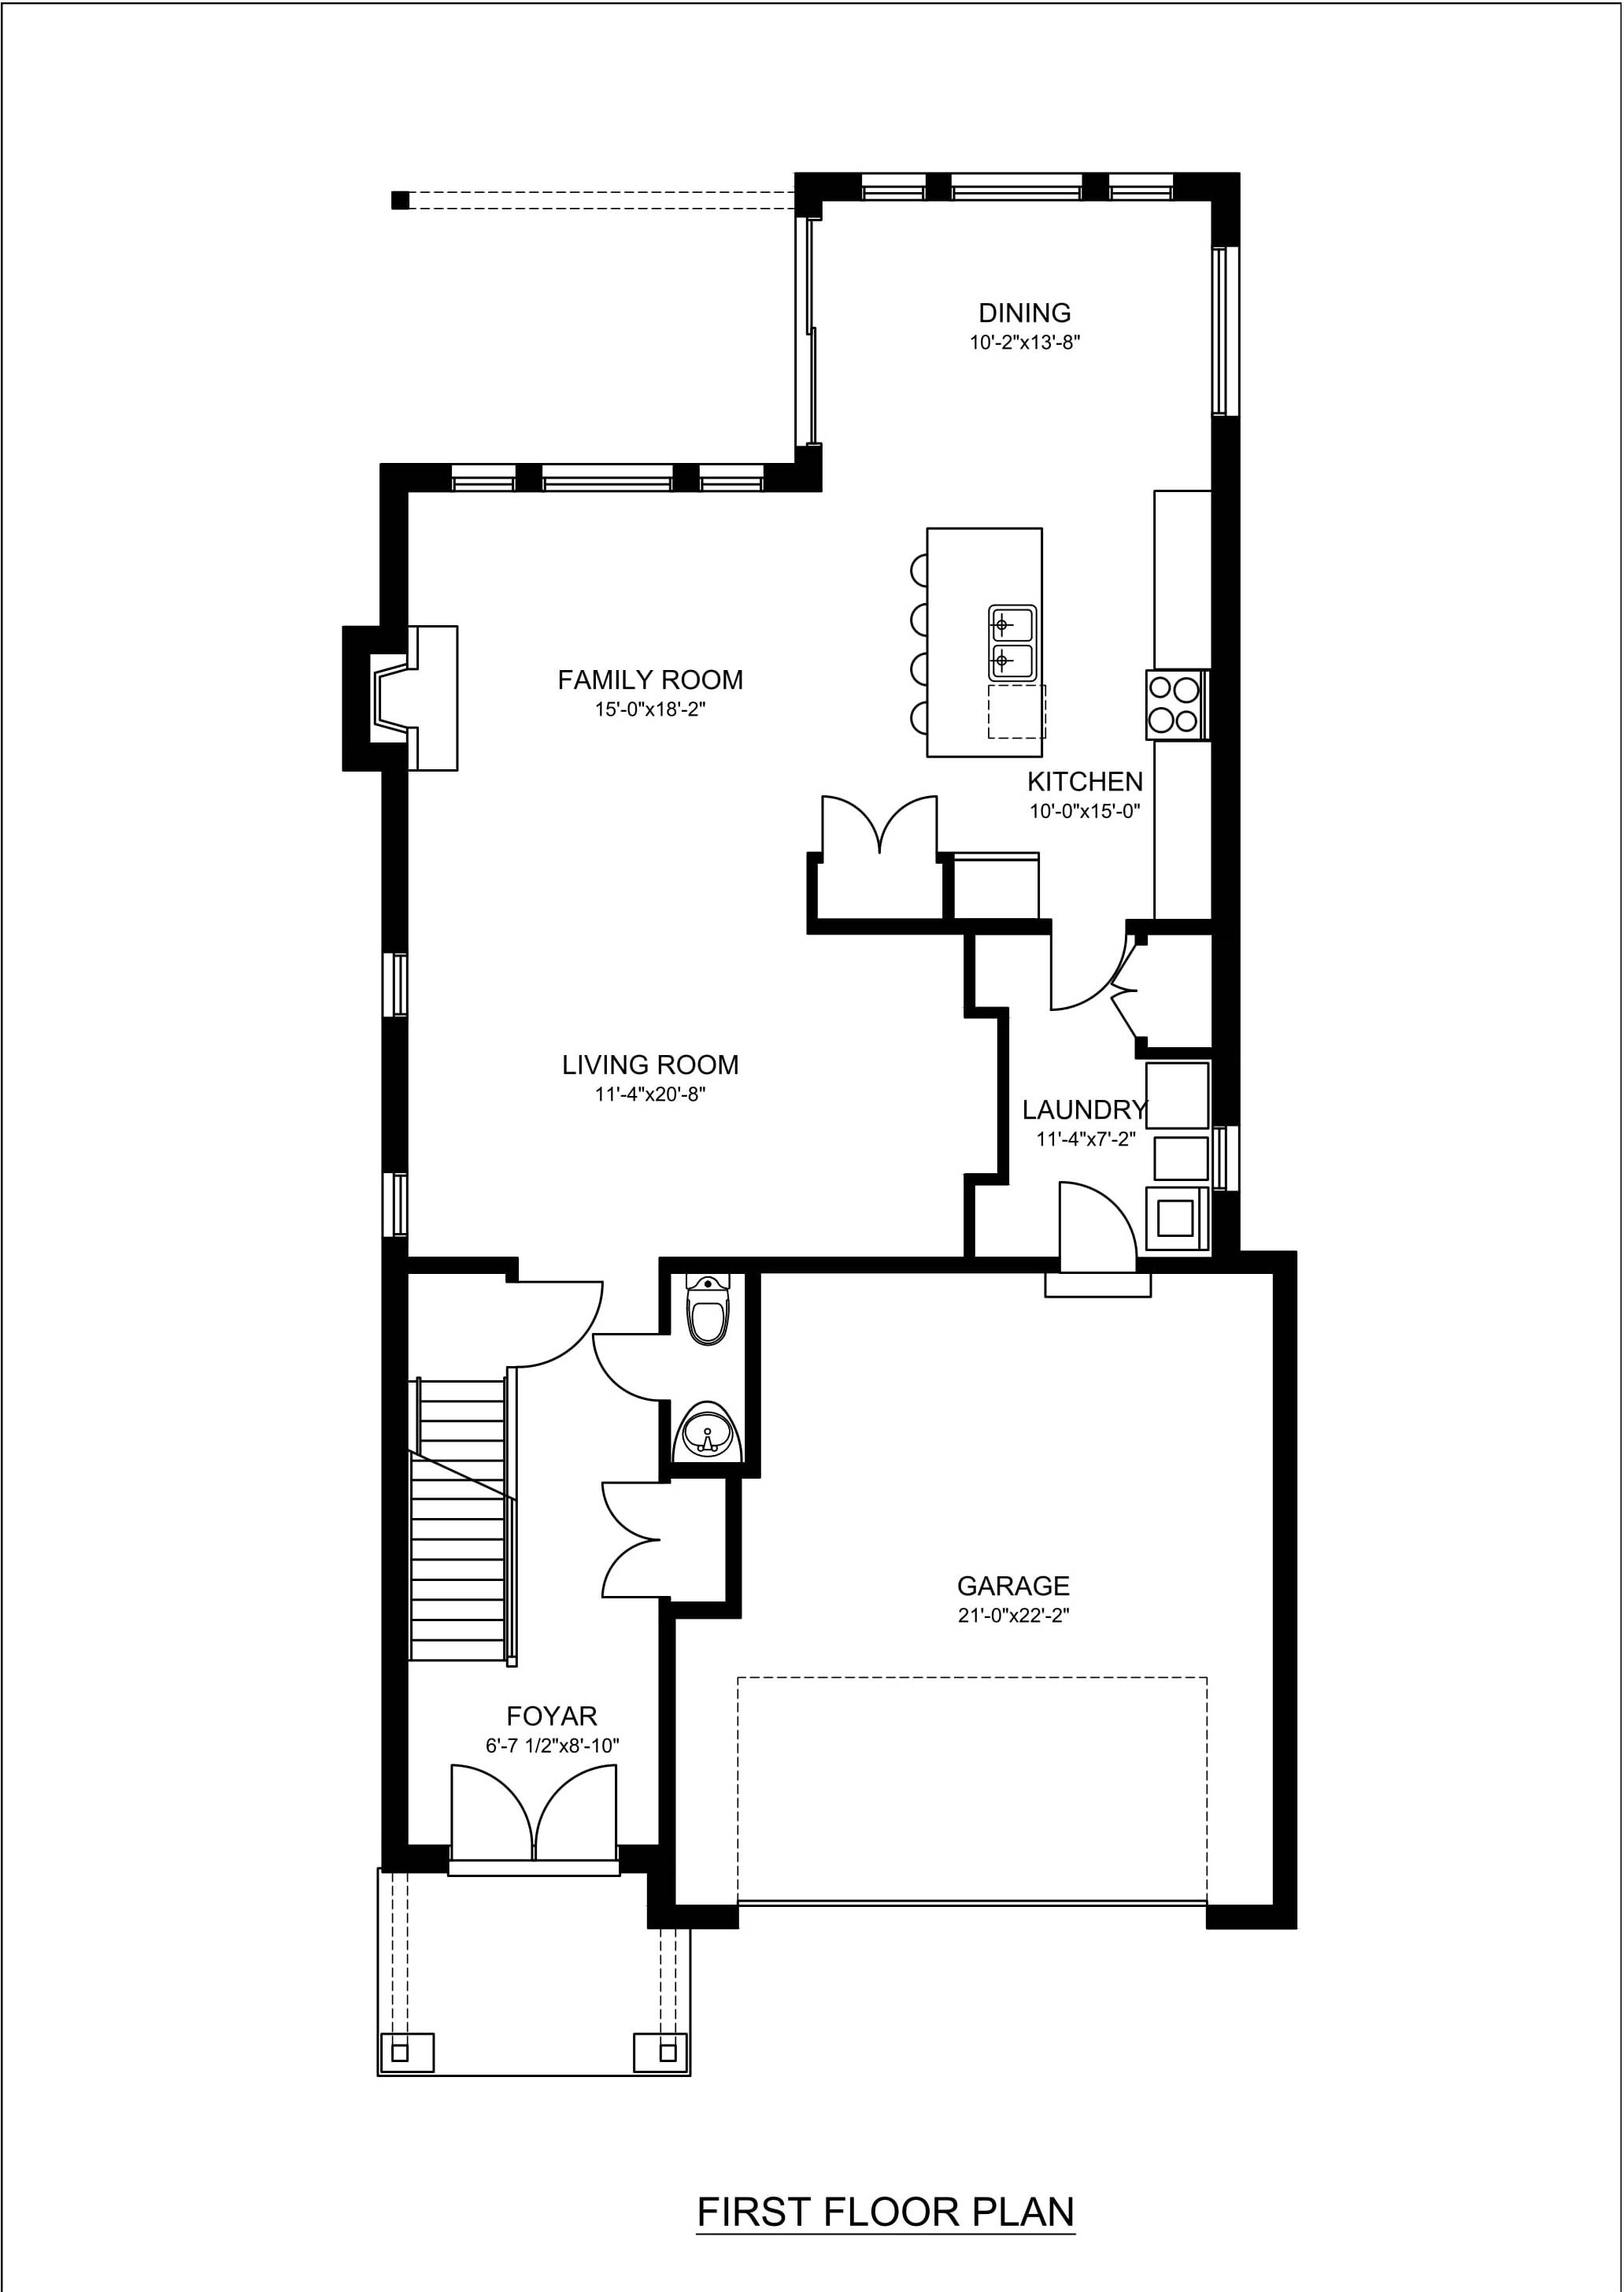 Floor-Plan-2D-for-Real-Estate-Sample-Example Samples Of Floor Plans Small Homes on for apartments, 2 bedroom apartment, for room, home layouts, for apartment 620 square feet, office building, for building, ja town,